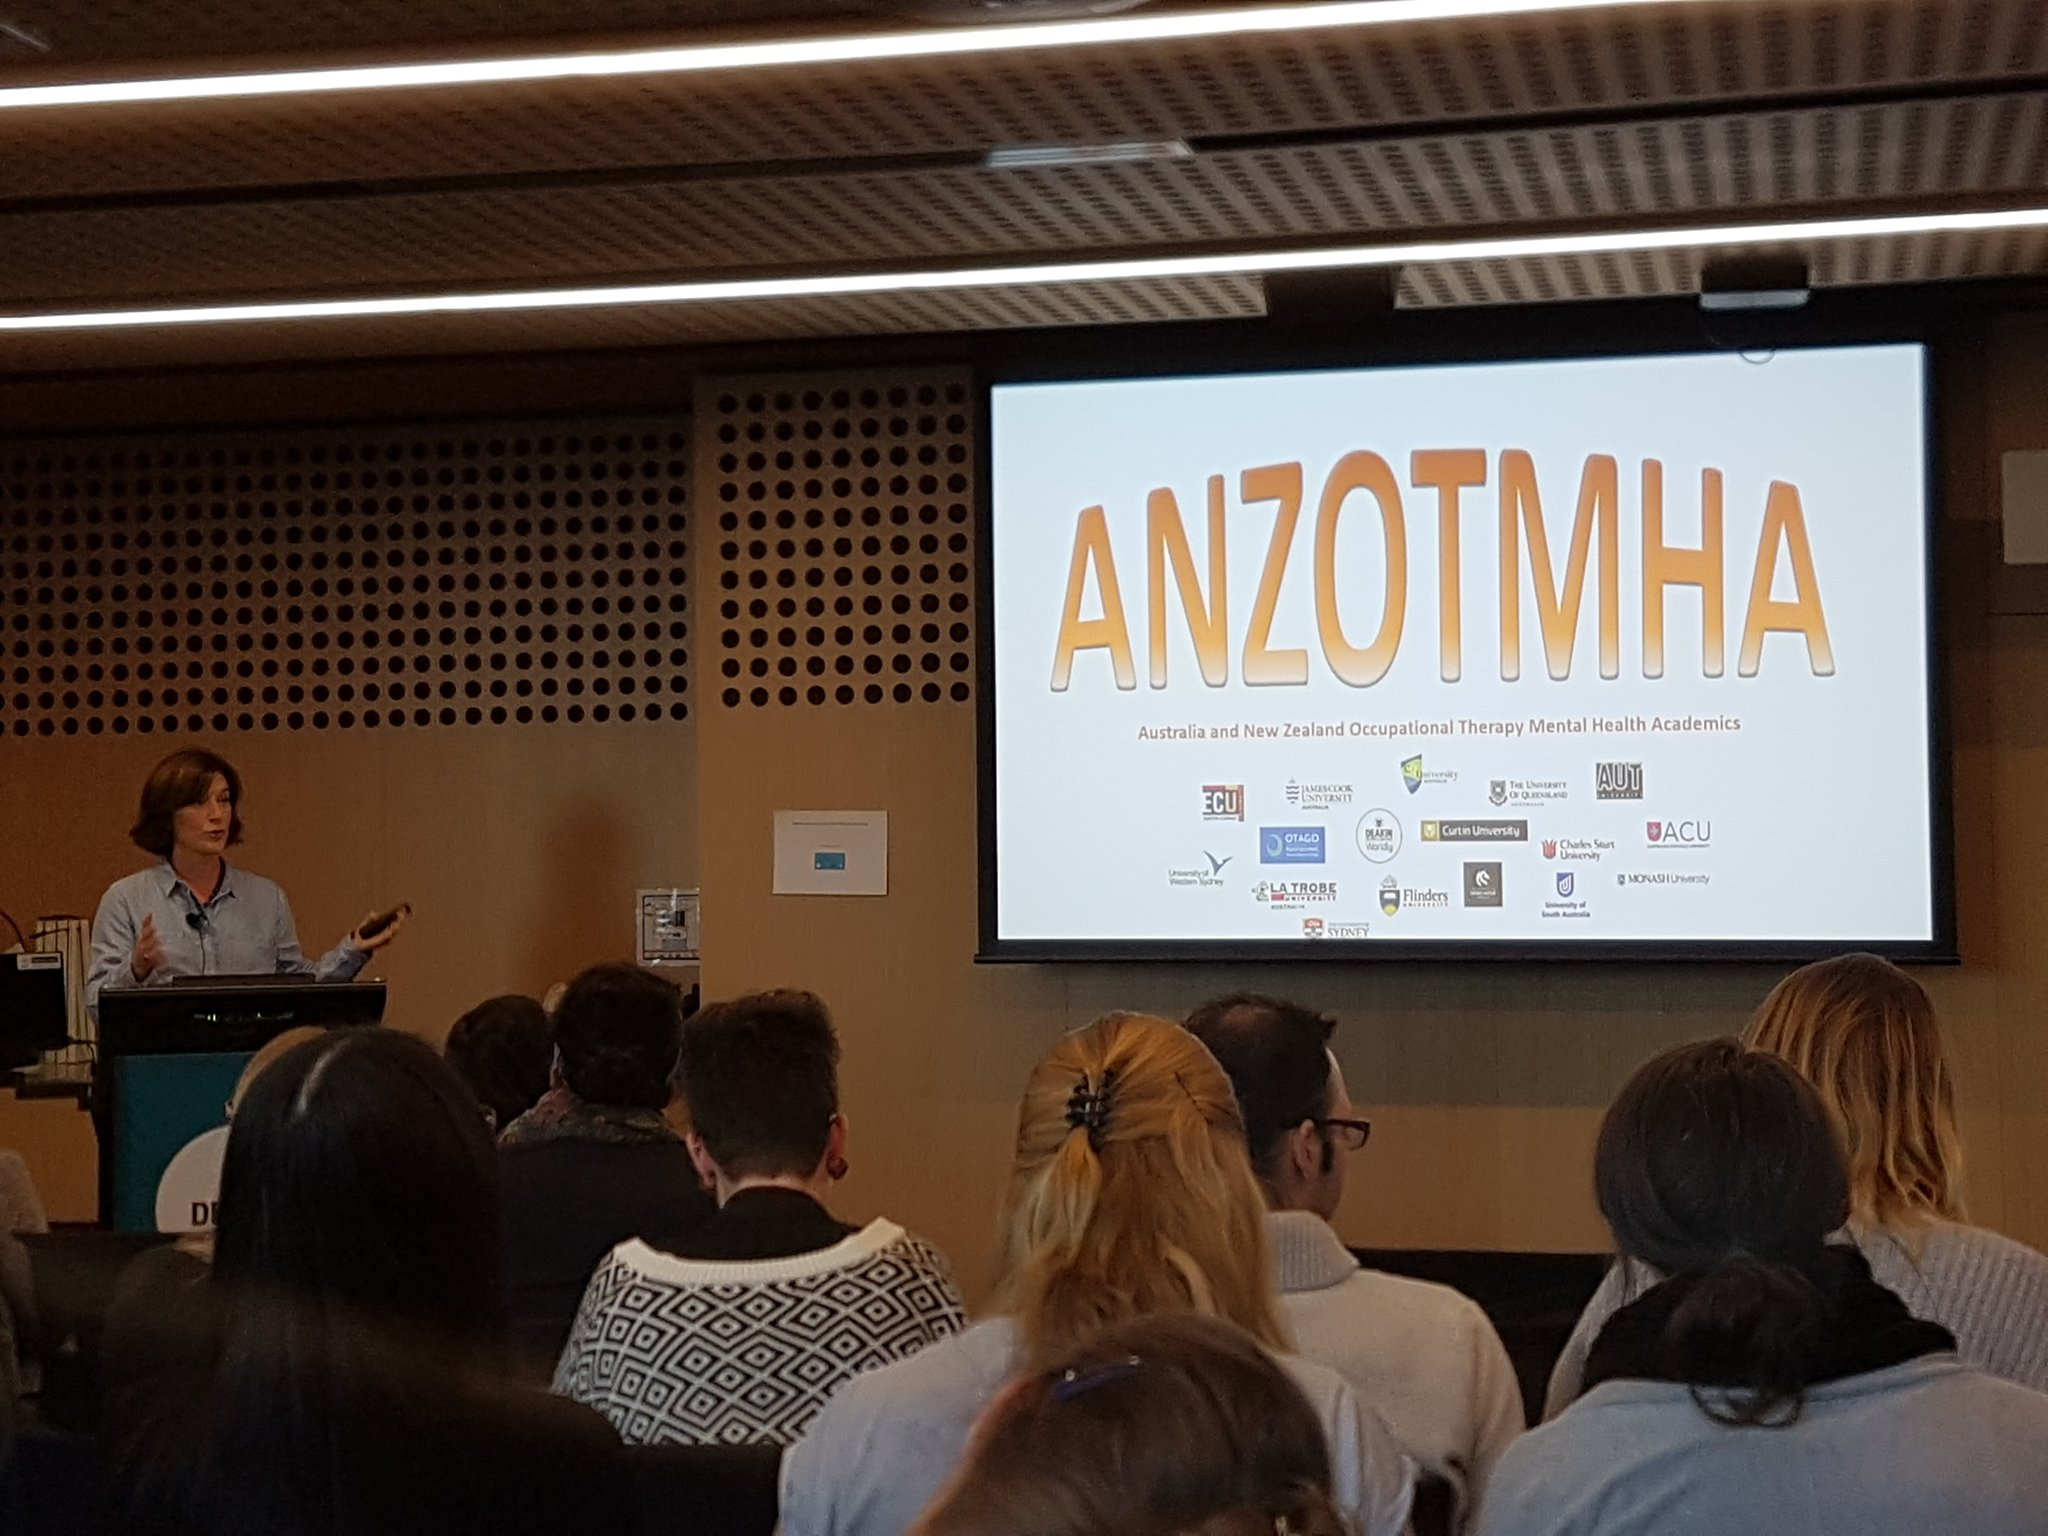 #mhotsymp2017 Ass. Prof. Genevieve Pepin spreading the word about ANZOTMHA https://t.co/ozN3sObxo0